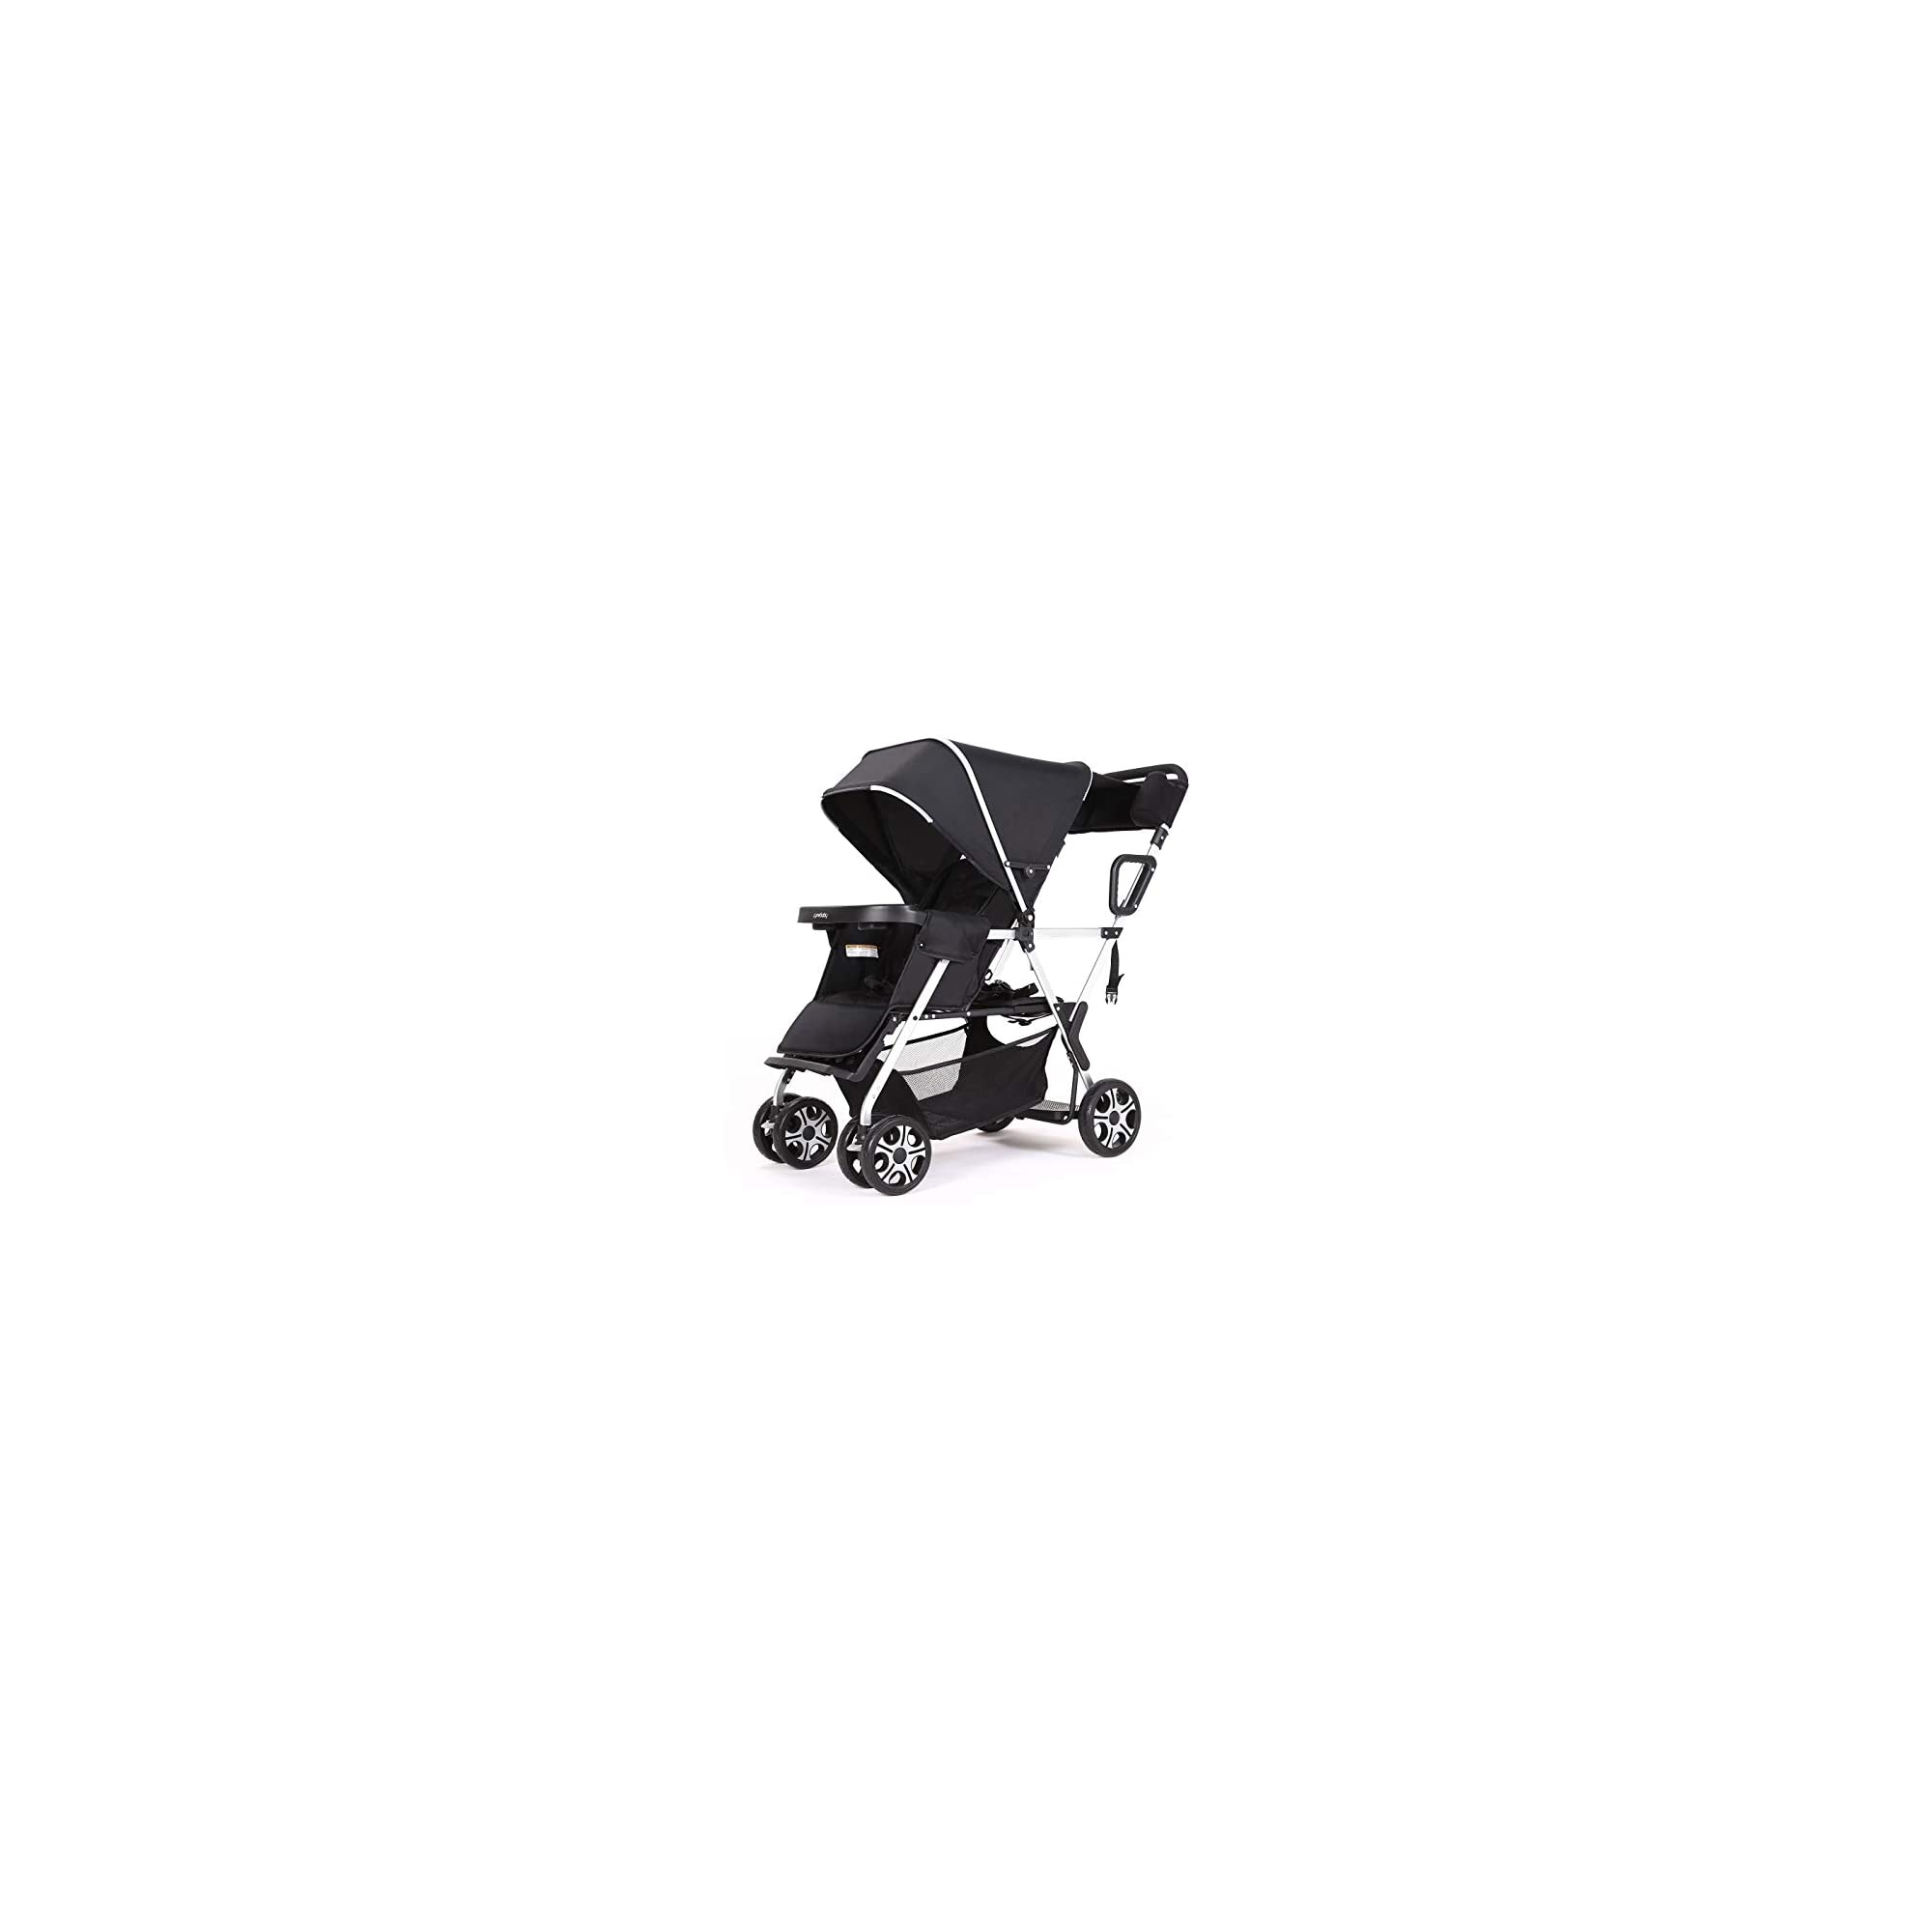 Double Stroller Convenience Urban Twin Carriage Stroller Tandem Collapsible Stroller All Terrain Double Pushchair for Toddler Girls and Boys Stable Stroller Frame with Bag Organizer (Oxford Grey)